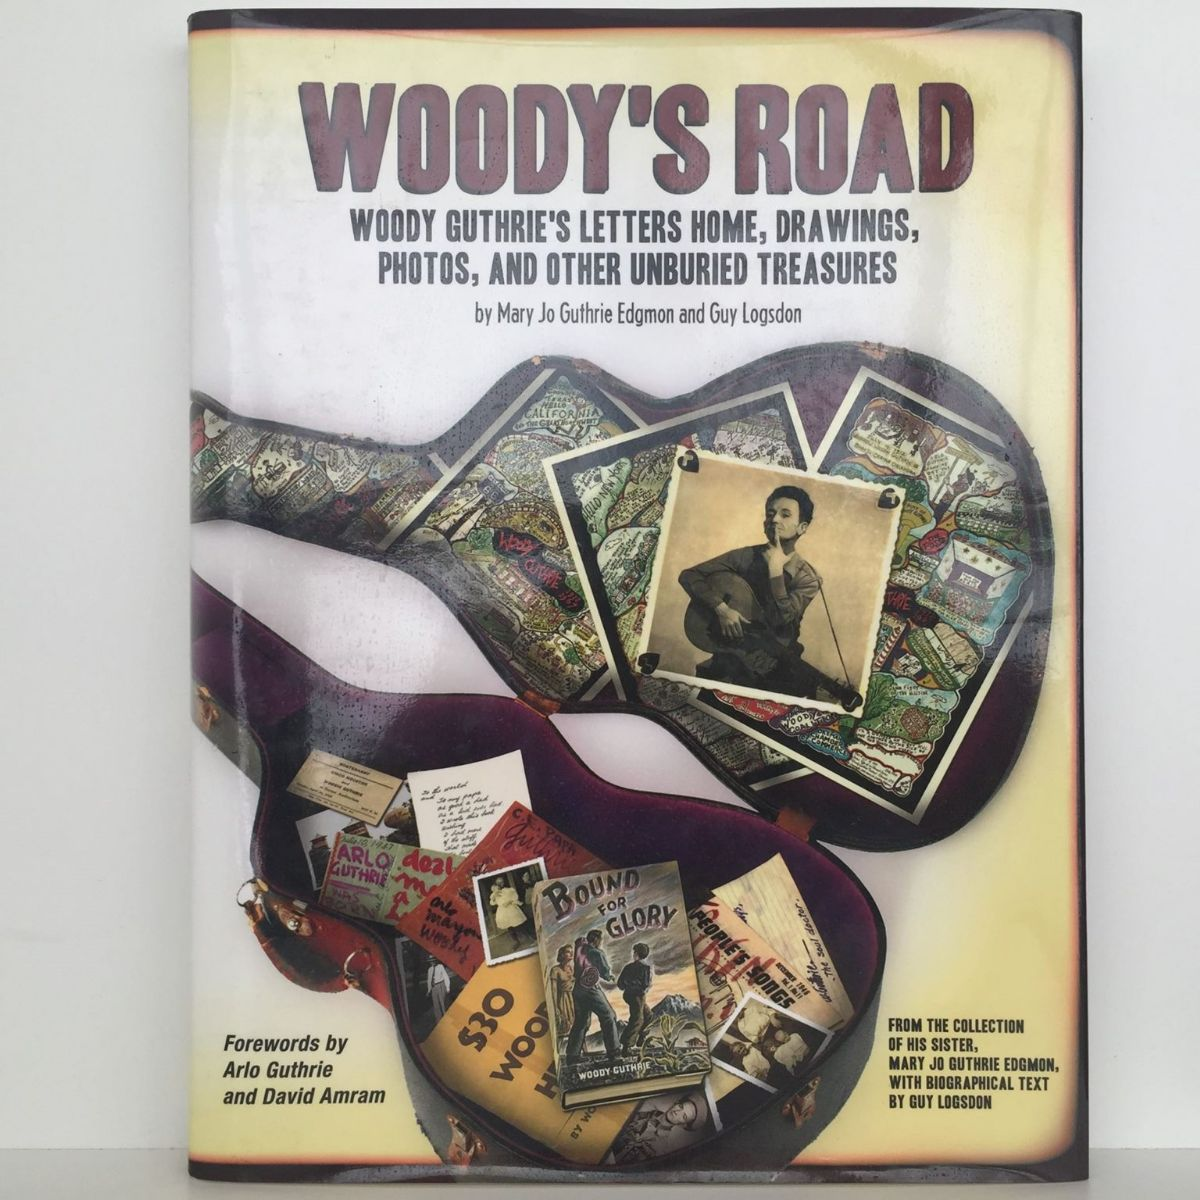 WOODY'S ROAD: Woody Guthrie's Letters Home, Drawings, Photos, and Other Treasures